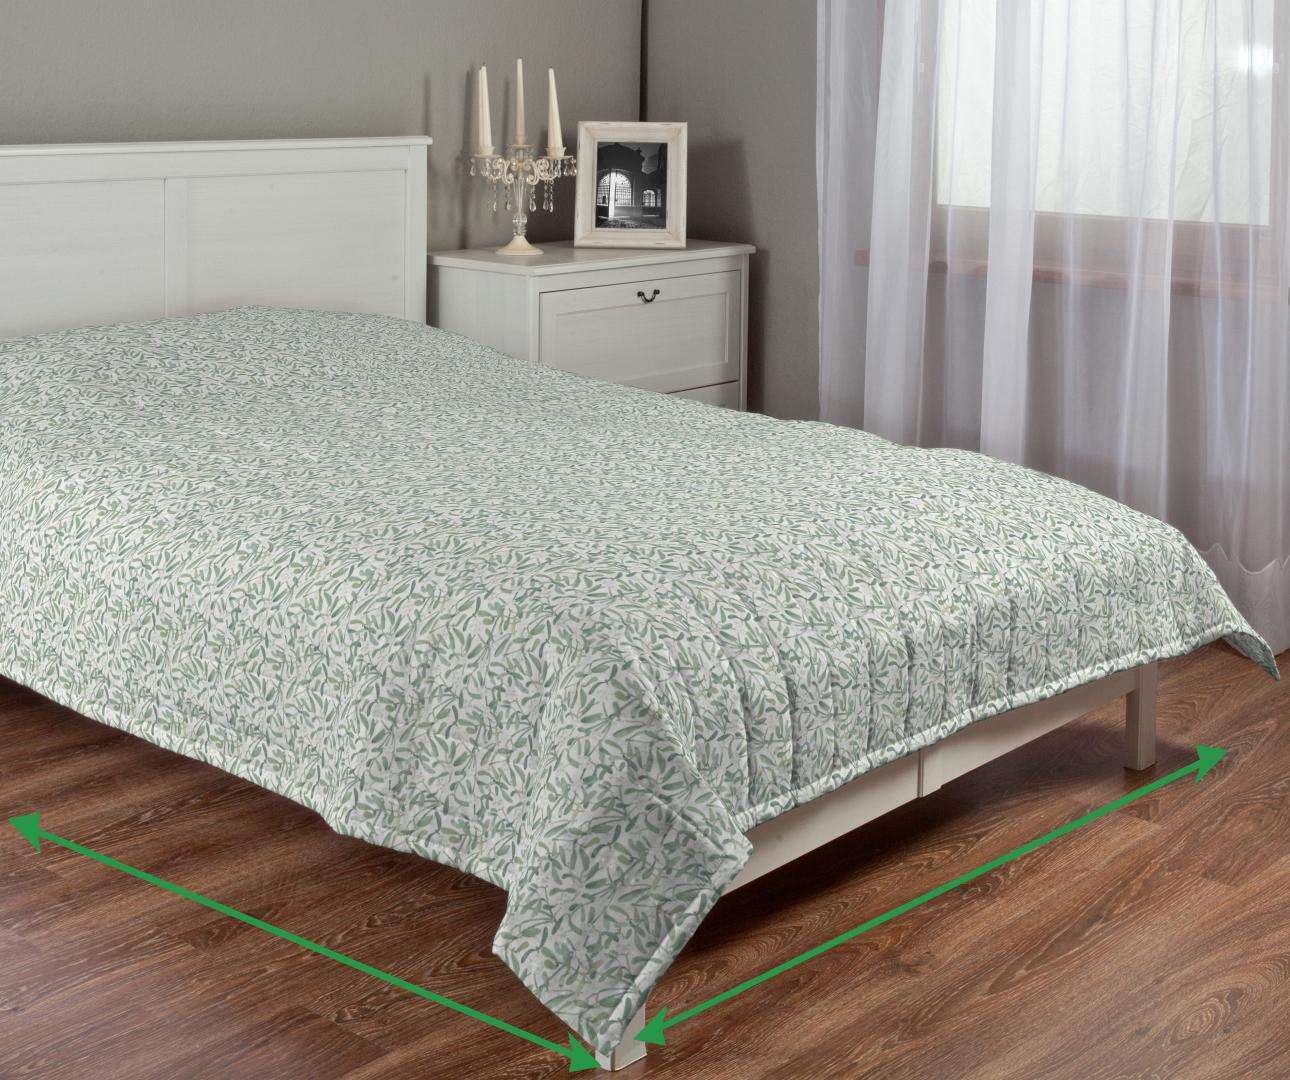 Quilted throw (vertical quilt pattern) in collection Norge, fabric: 150-19